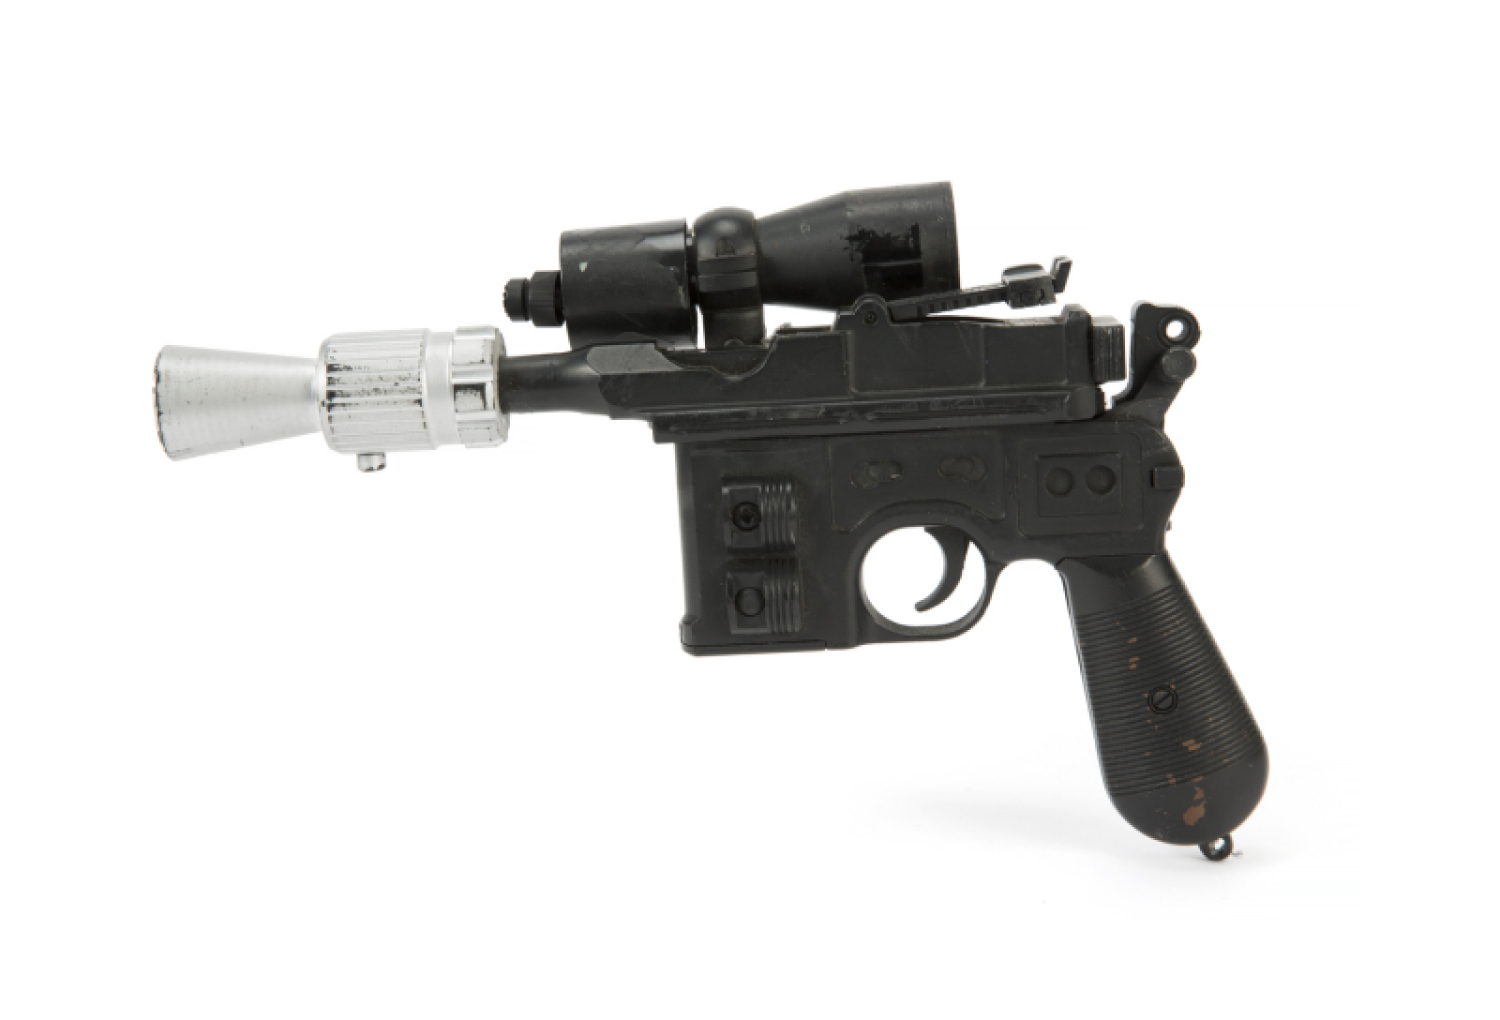 SPECIAL PRICE Blue Han Solo Gun//Blaster  Weapon REPRO Star Wars for Vintage